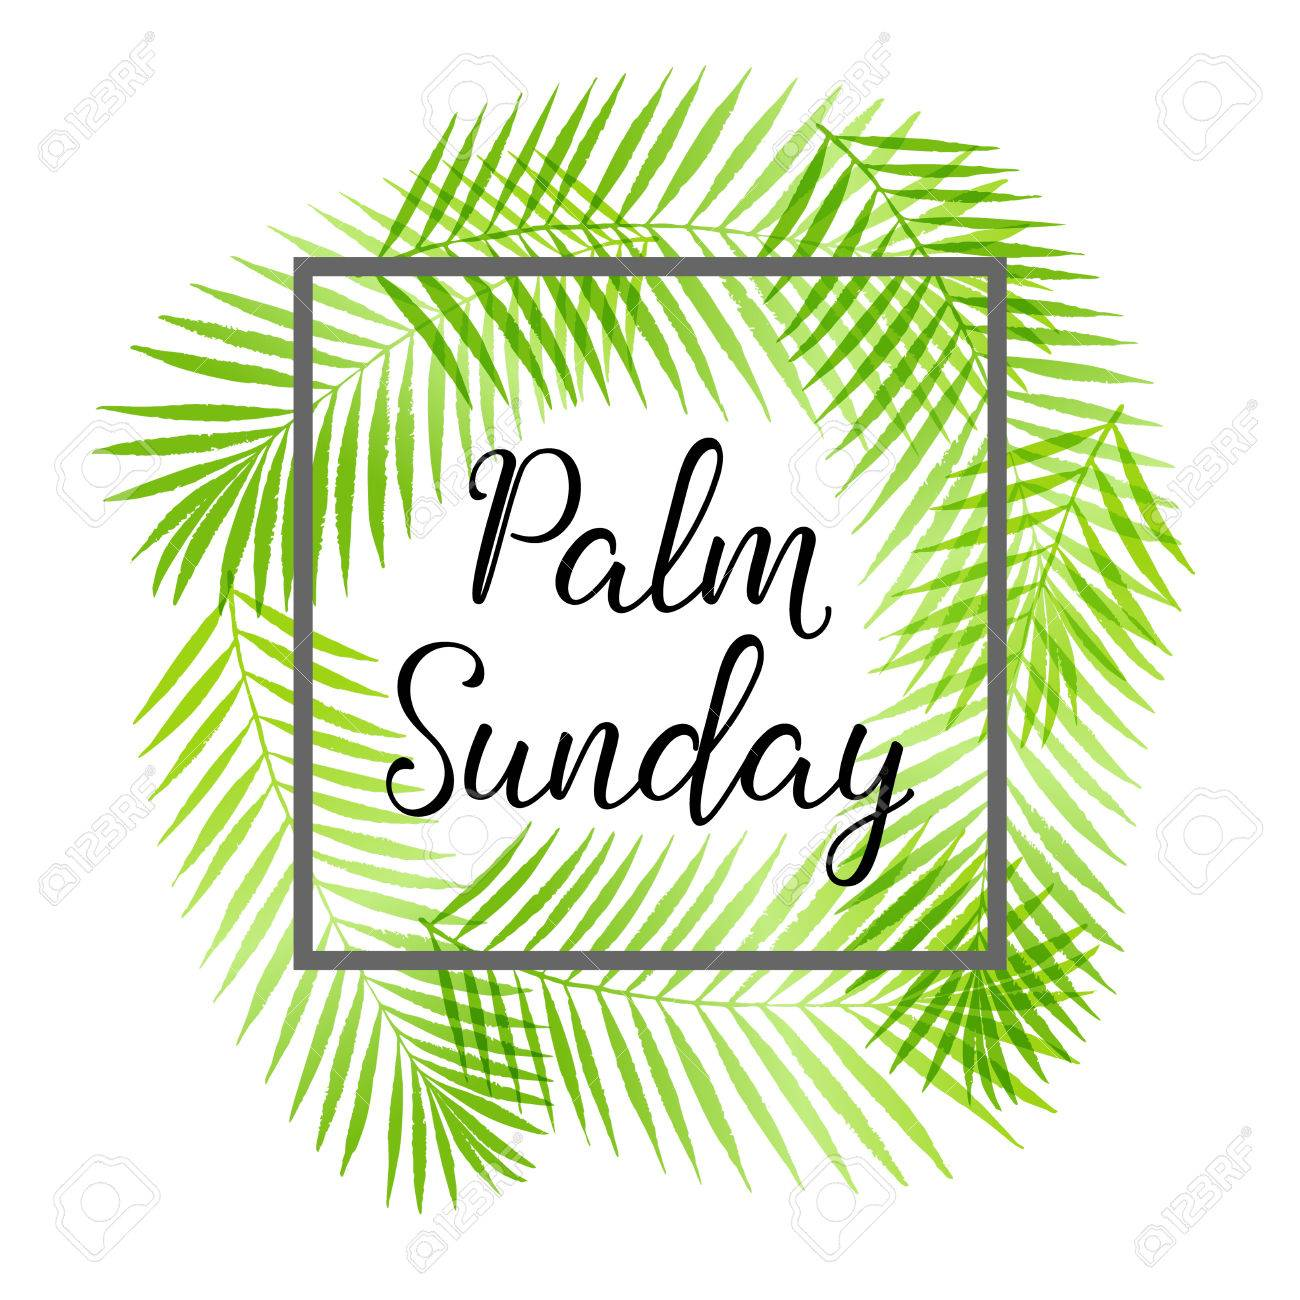 palm sunday holiday card poster with palm leaves border frame rh 123rf com Religious Communion Clip Art Religious Easter Clip Art